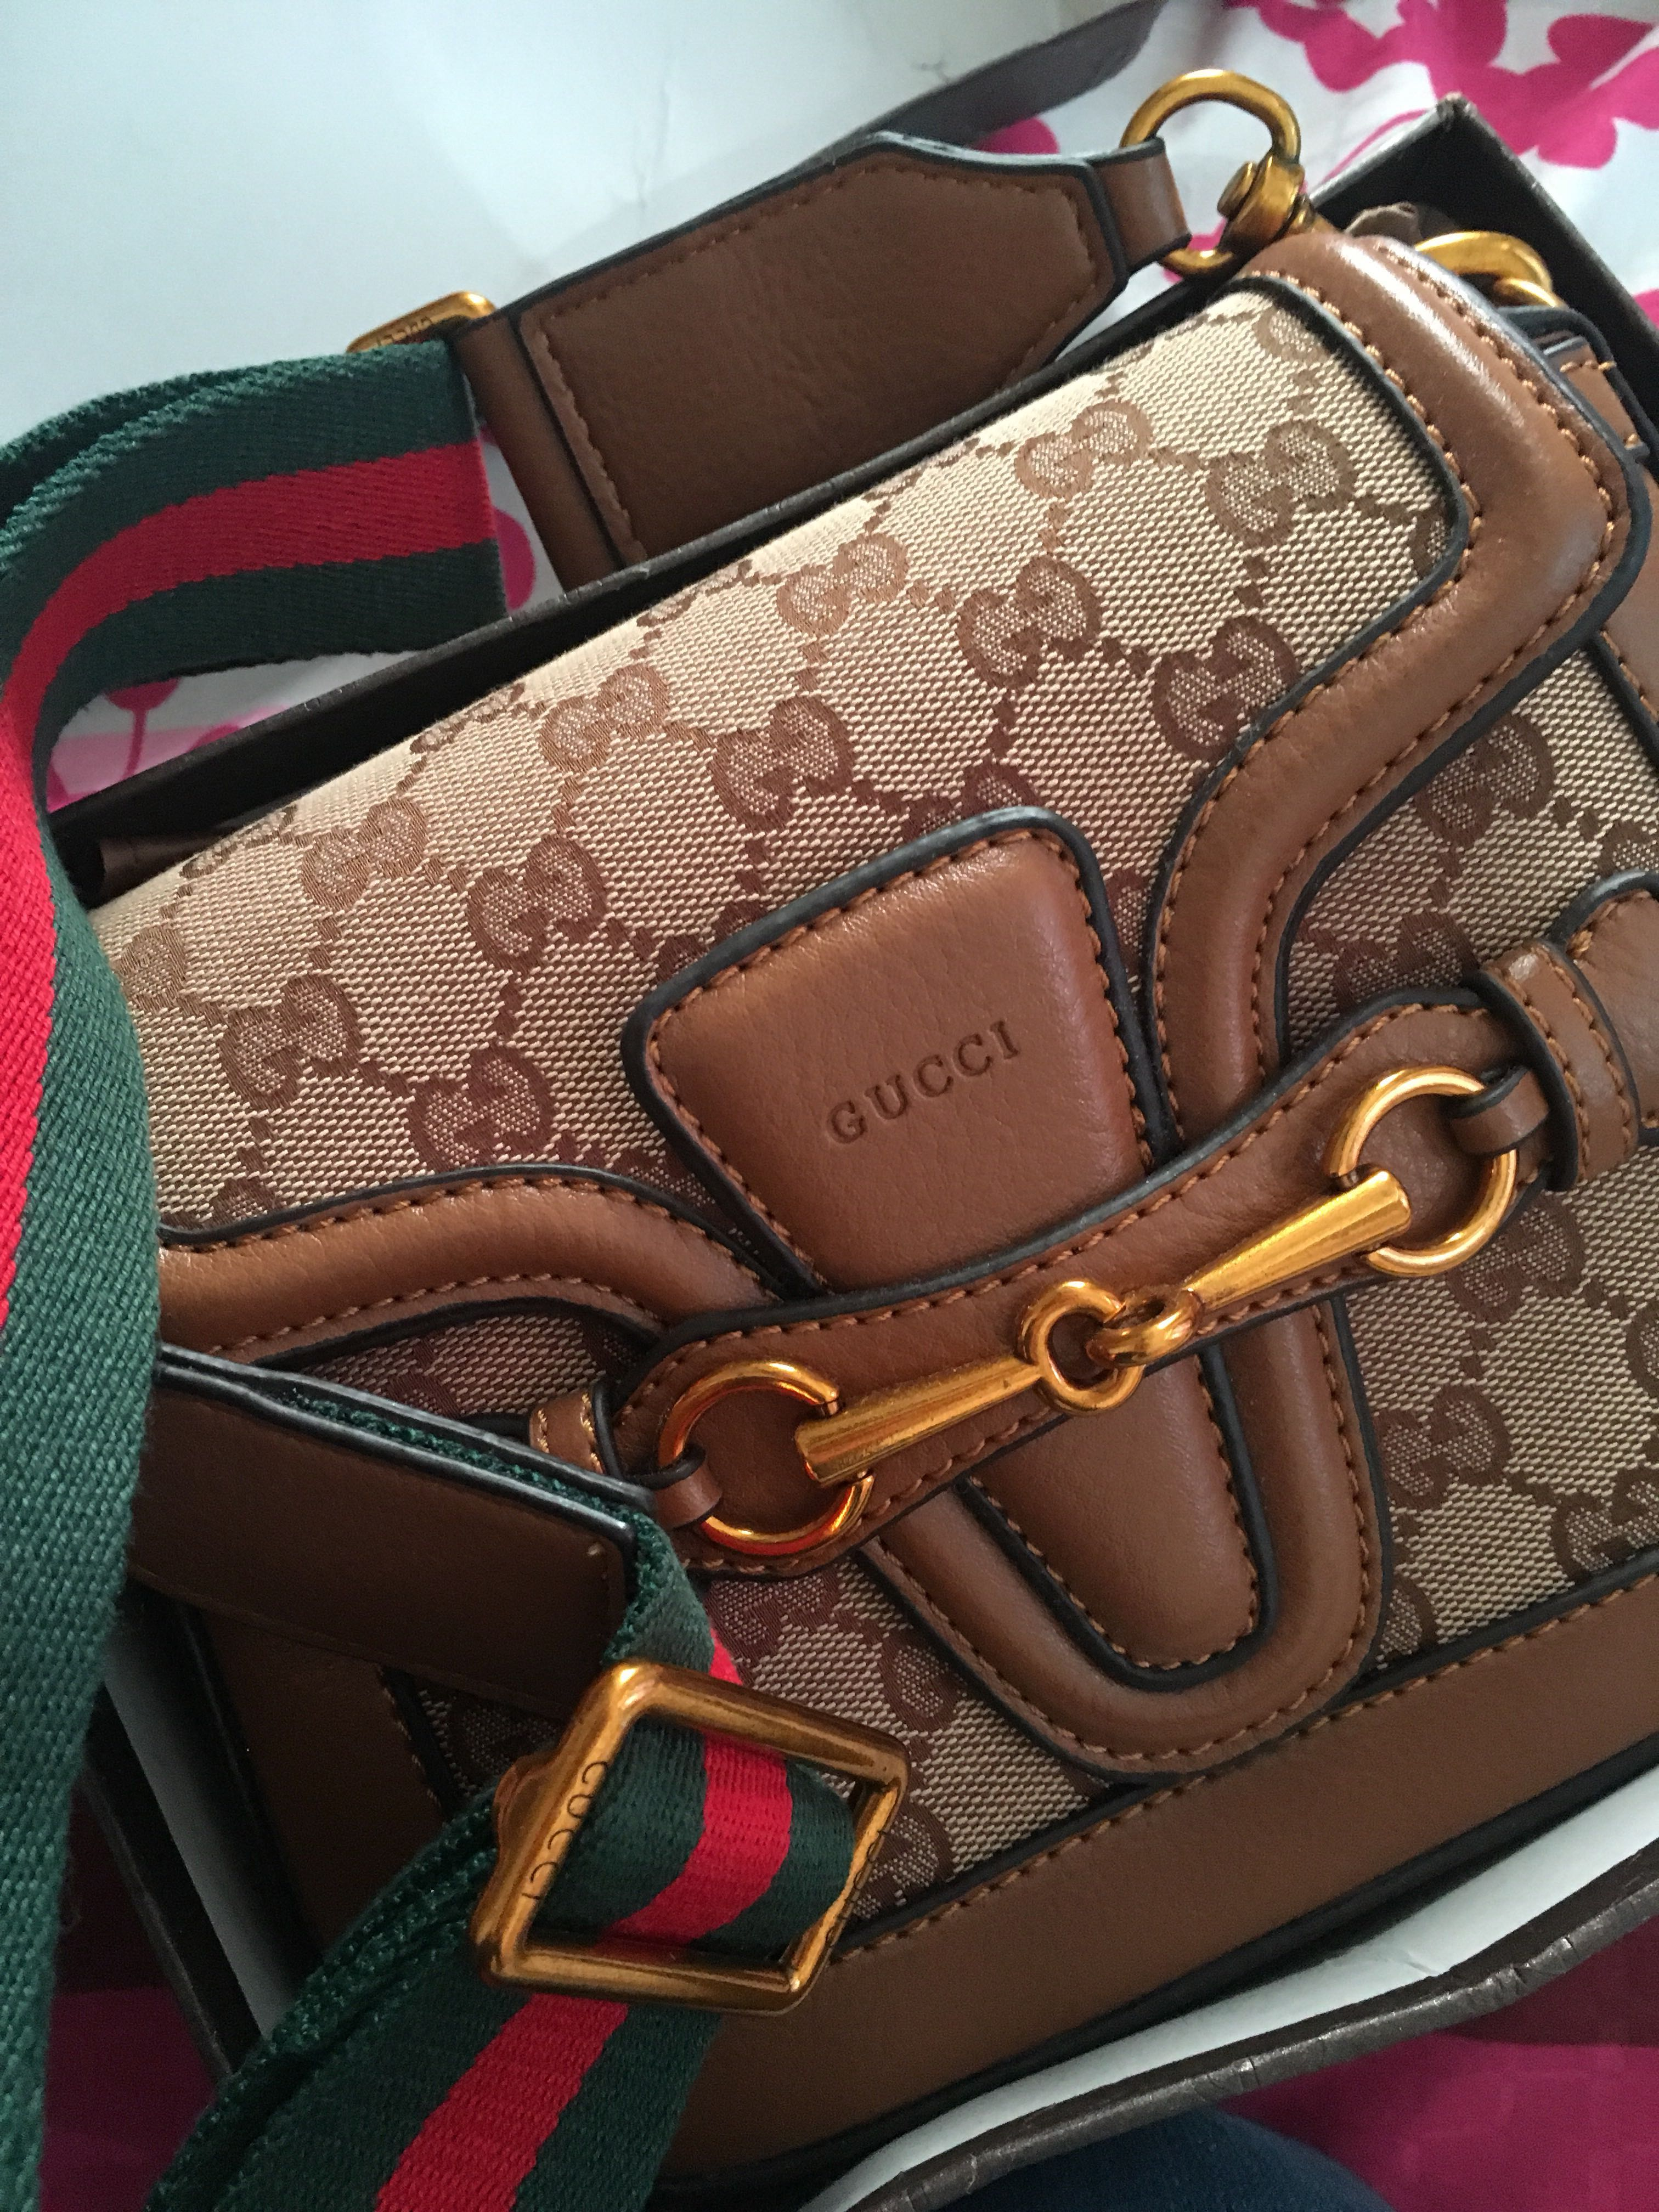 542f2e7aa25 ✂️price reduce✂ Gucci sling boutique quality